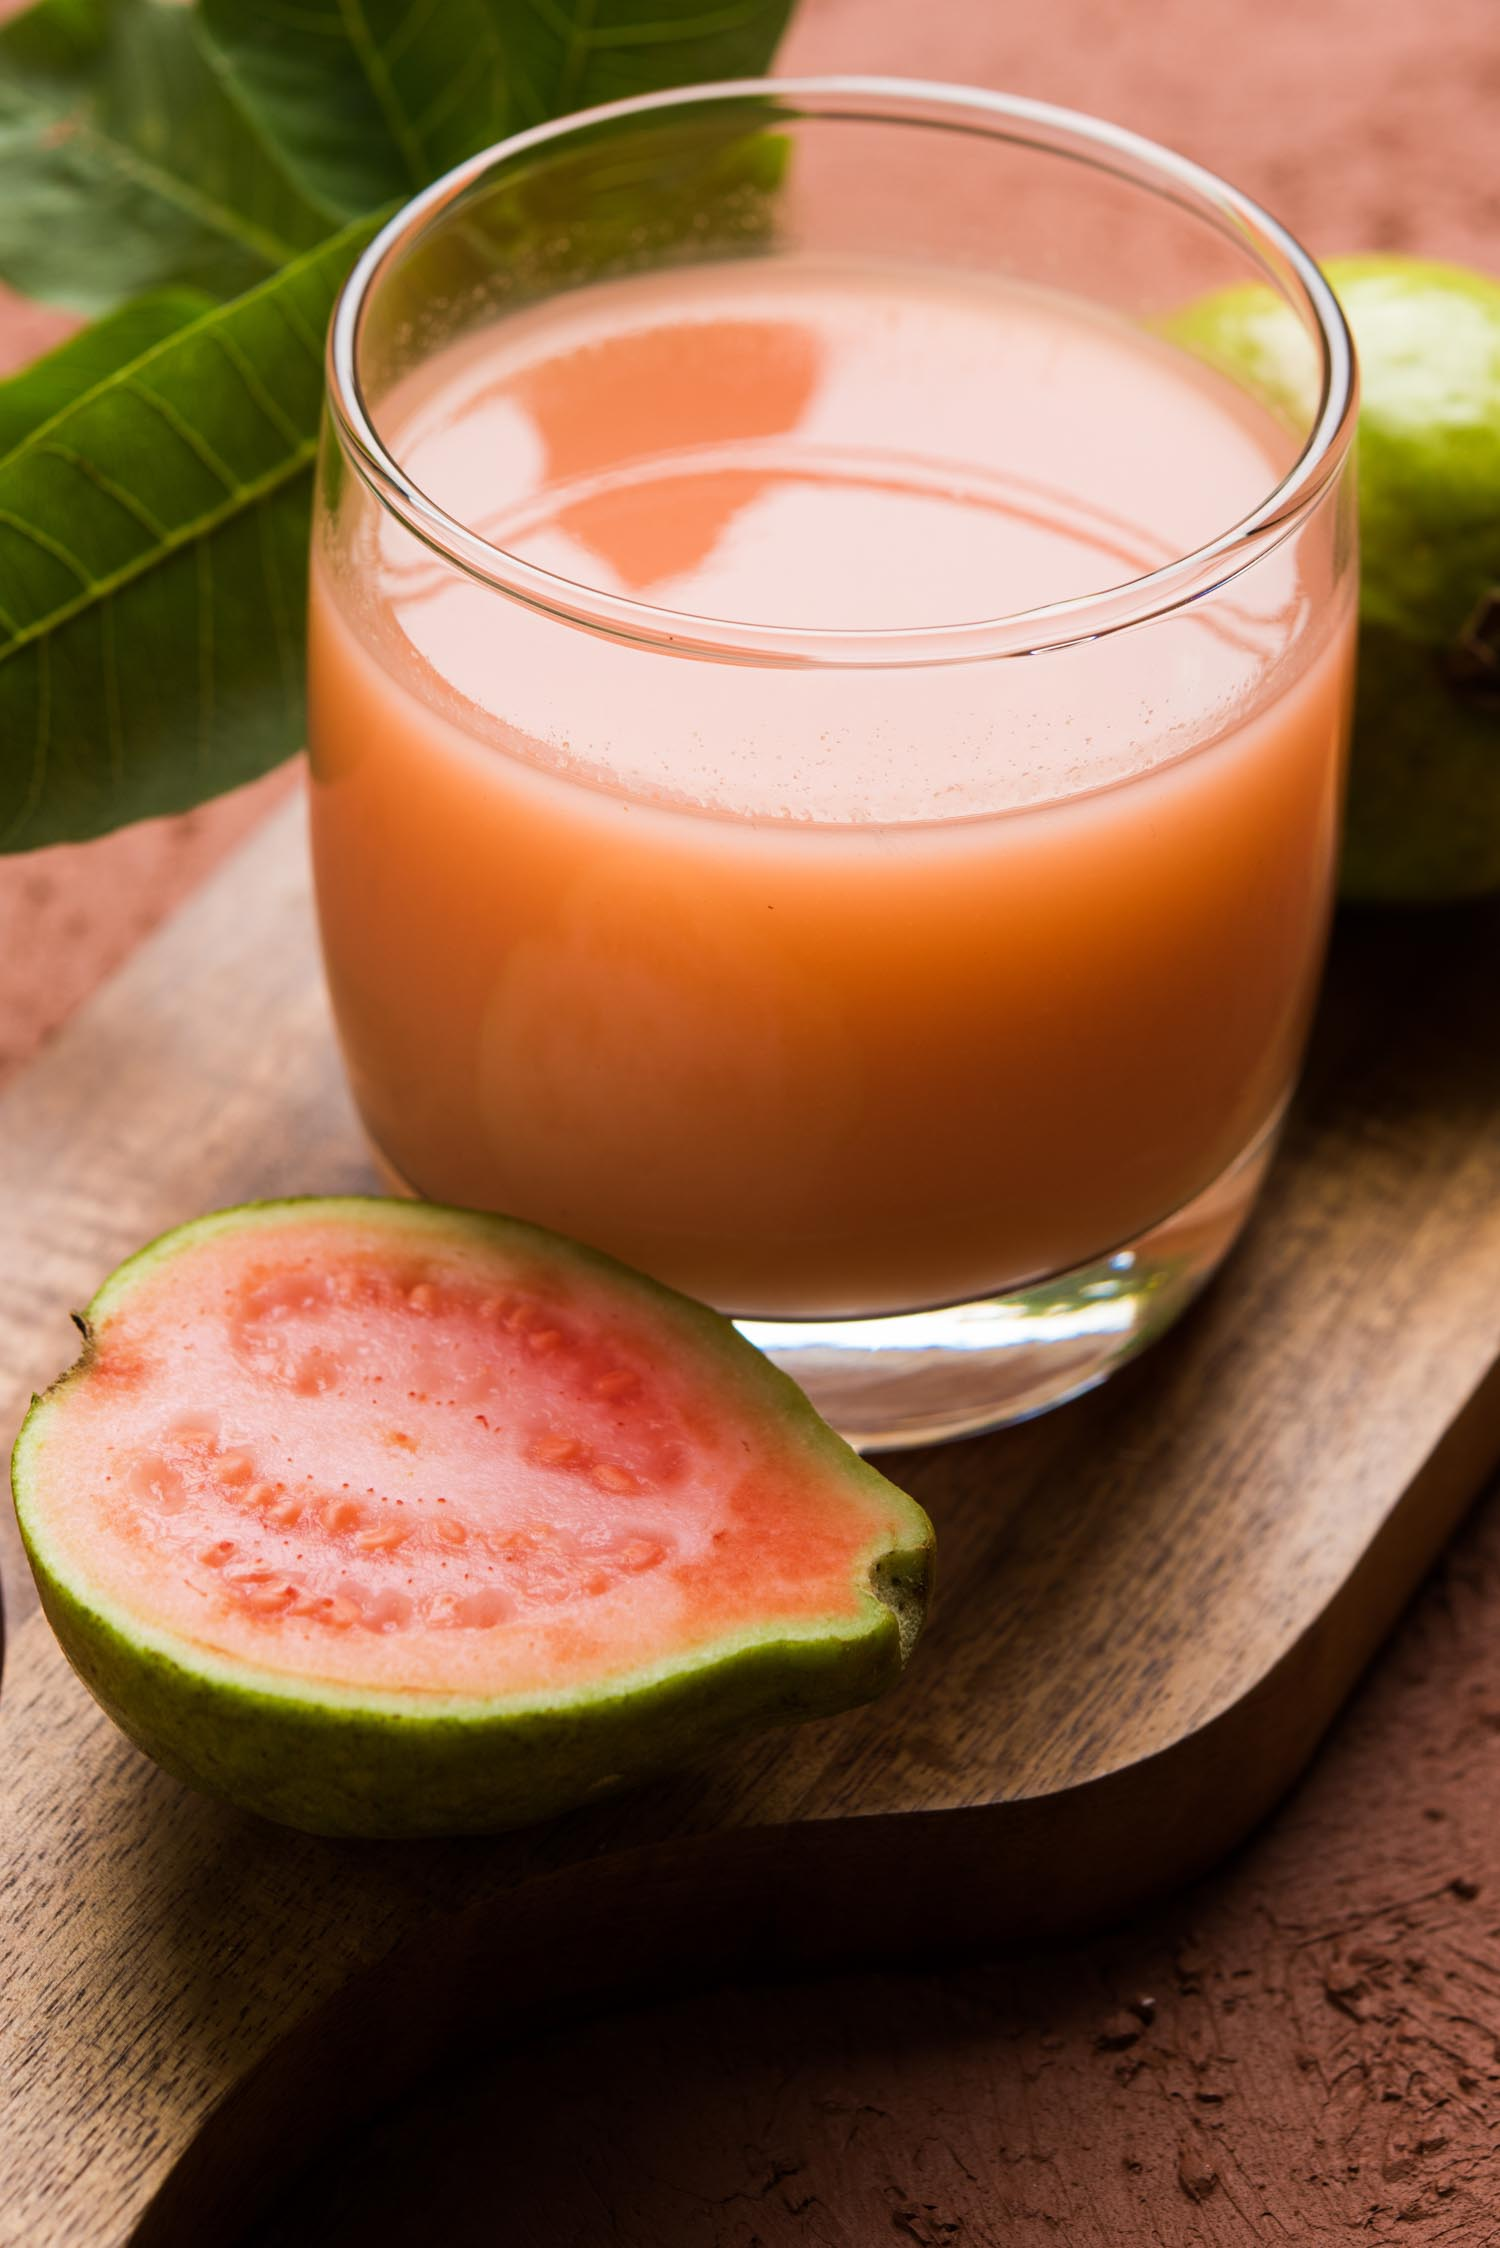 Jamaican fruit Guava juice or Amrud drink or Smoothie with fresh Guava fruit, moody lighting selective focus